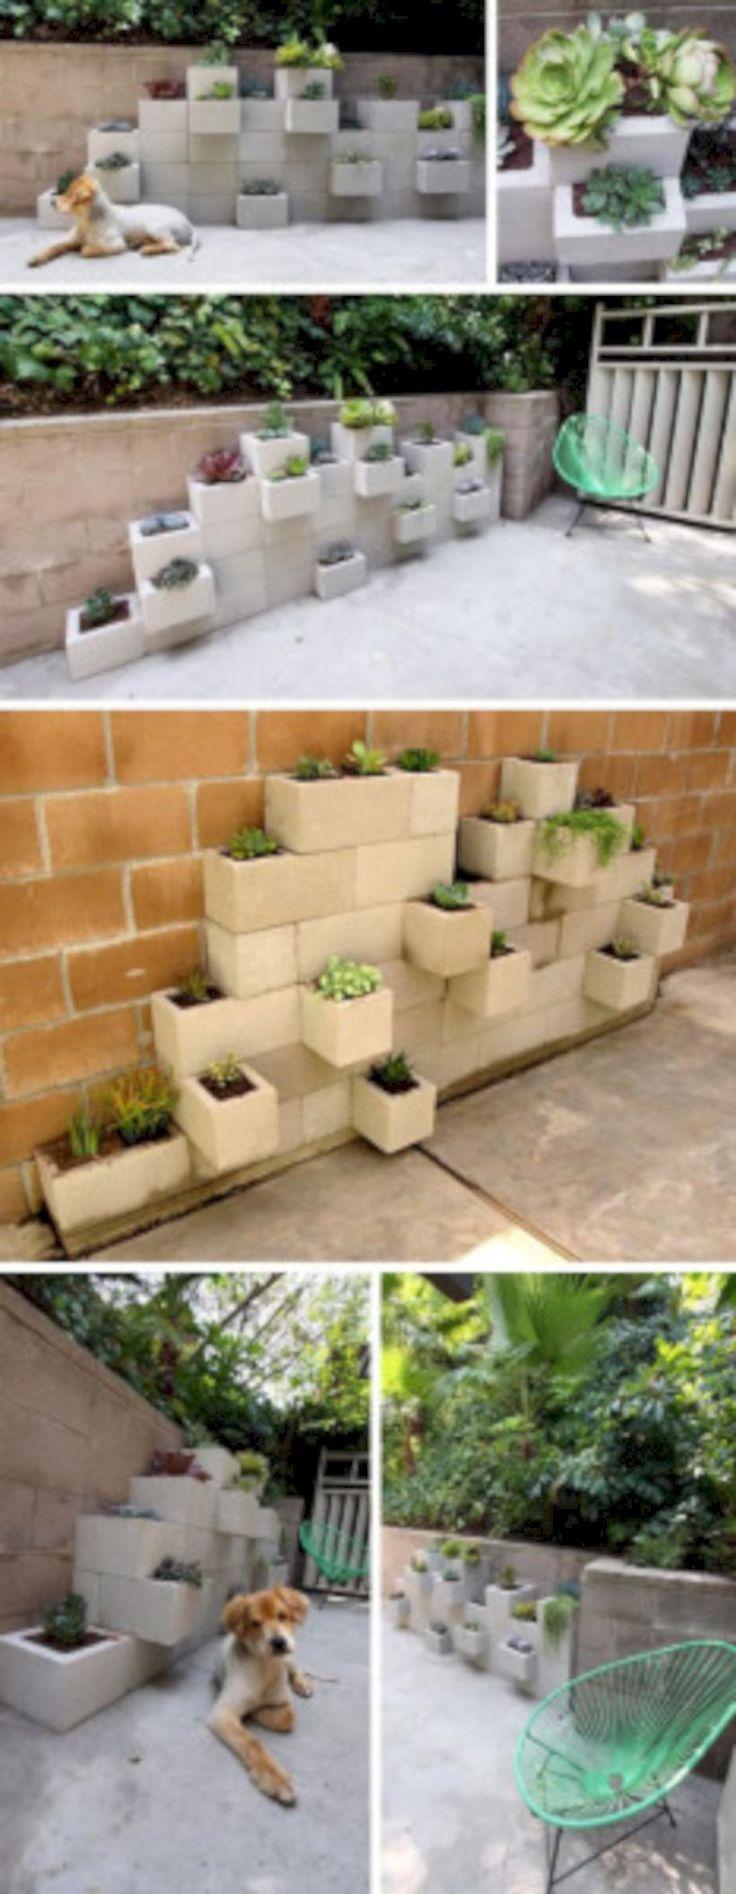 We all love a good backyard hack especially the one that is simple but affordable. And nowadays people are building innovative and inexpensive outdoor furniture such as benches, tables, shelves and more from the unexpected material, cinder blocks. Cinder block is originally intended for construction, but the hollowed-out concrete blocks have all sorts of other uses, as this Clever proves. So let's decorate your garden space using cinder blocks.